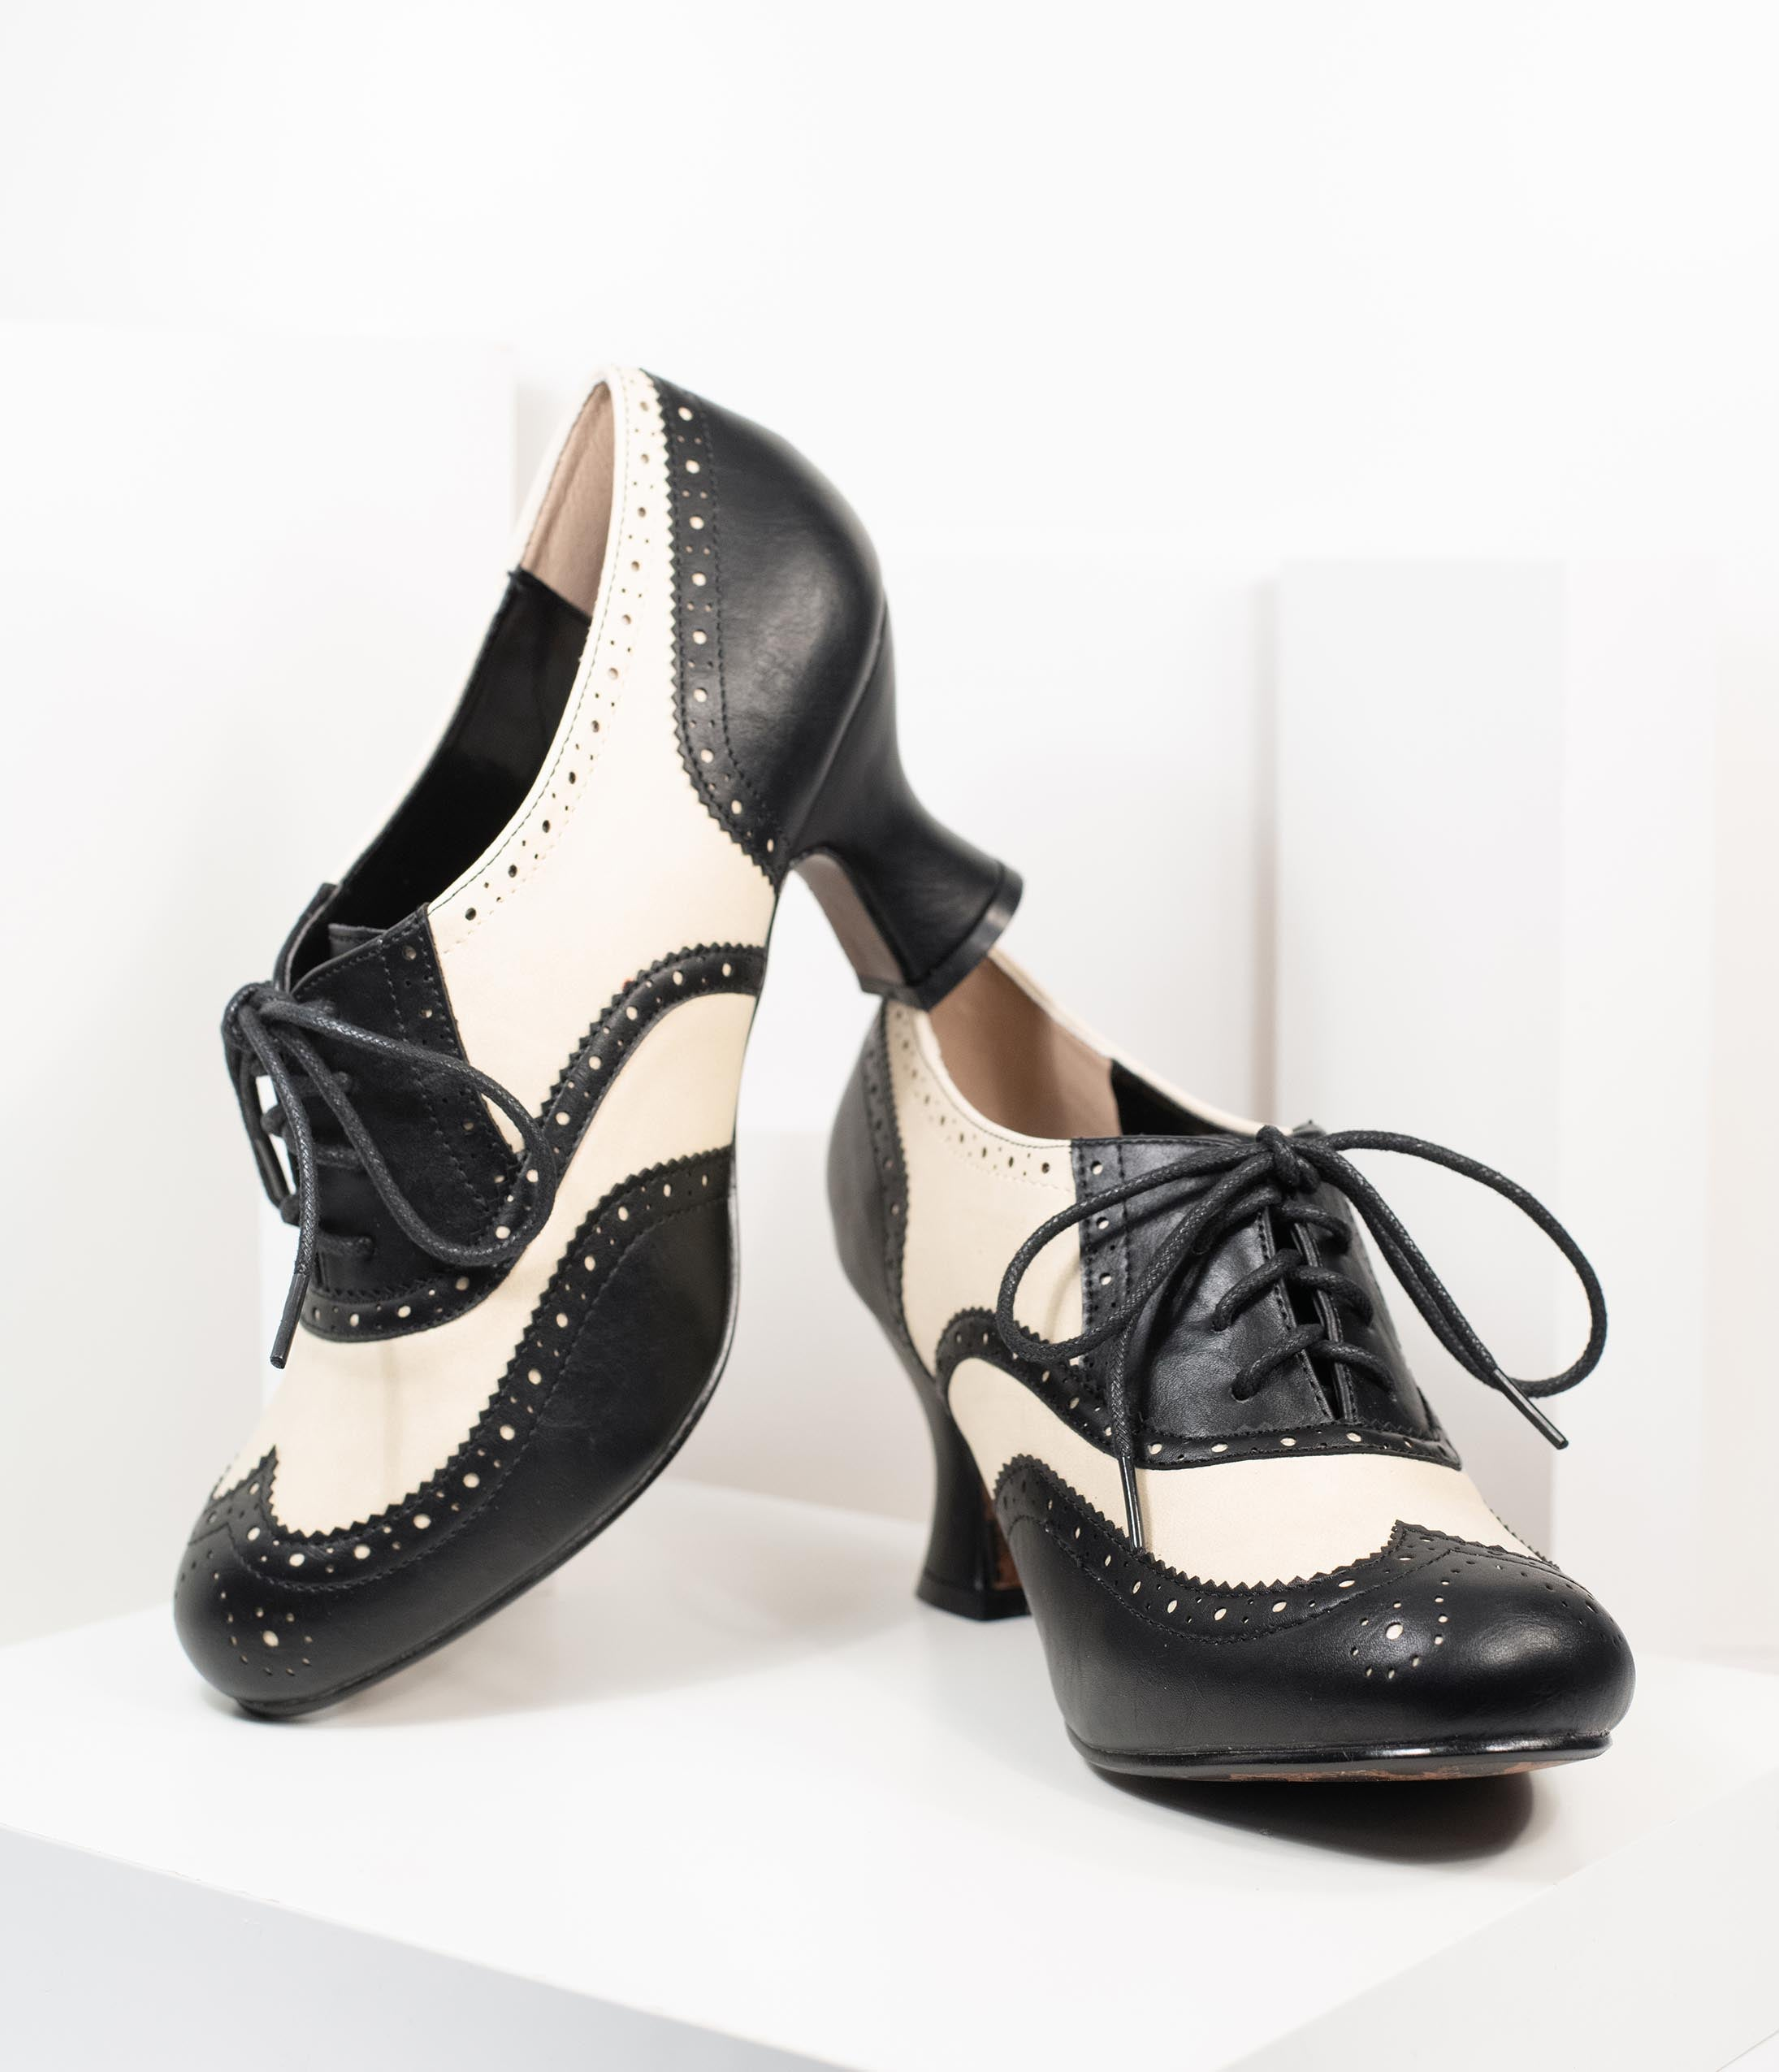 Vintage Heels, Retro Heels, Pumps, Shoes Bettie Page Black  Ivory Leatherette Patricia Oxford Heels $82.00 AT vintagedancer.com